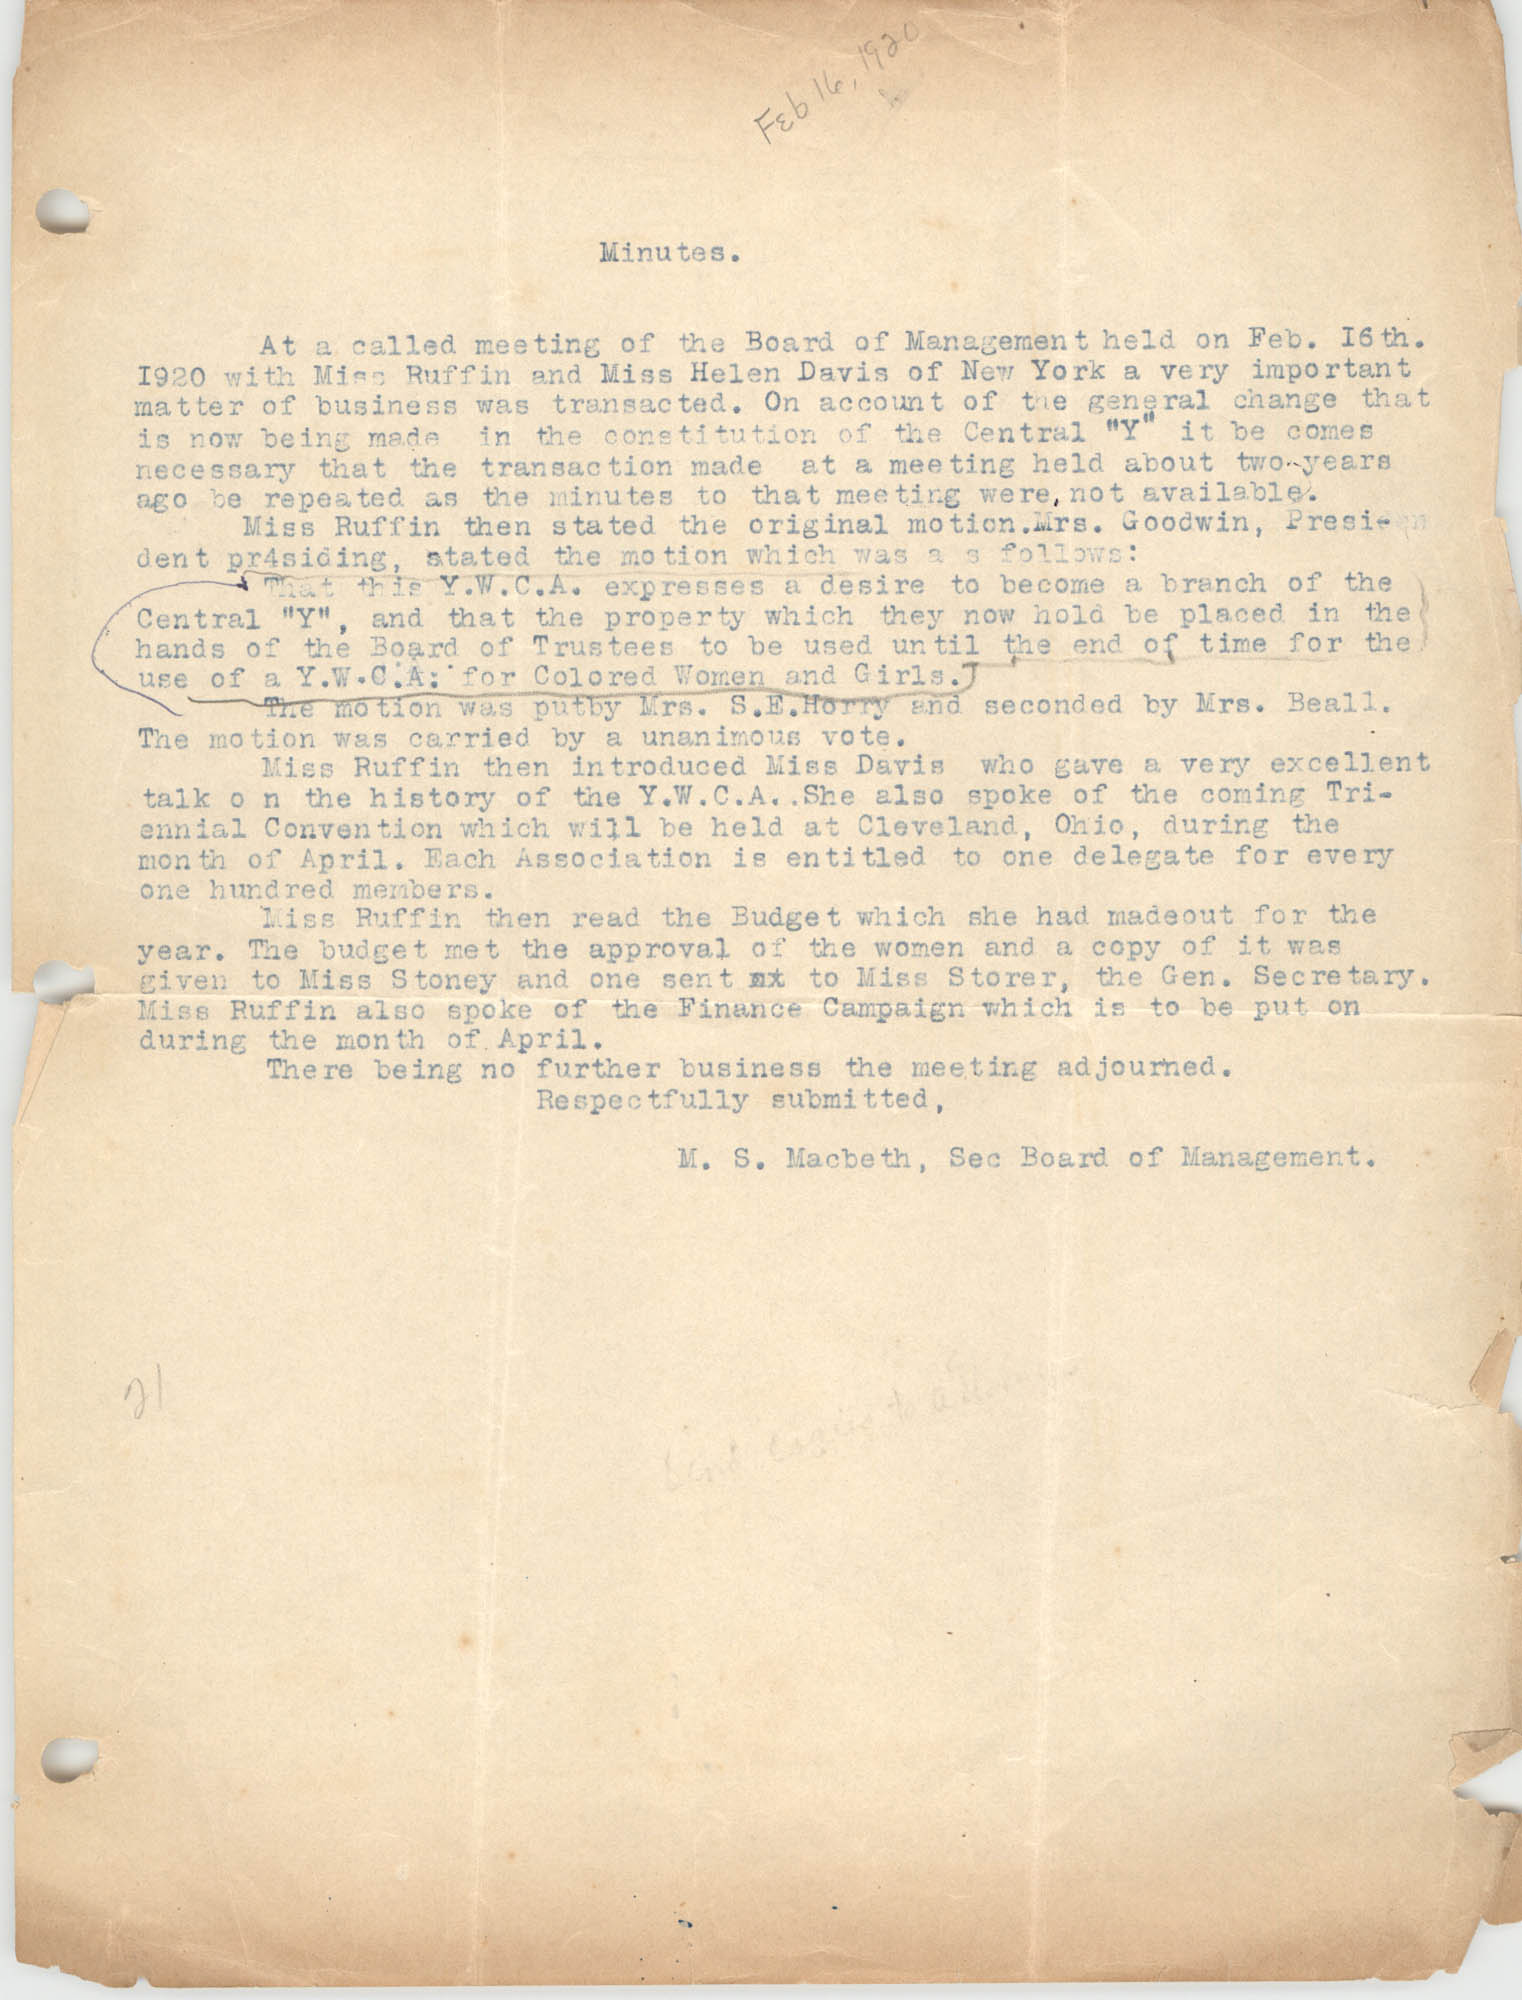 Minutes, Coming Street Y.W.C.A., February 16, 1920